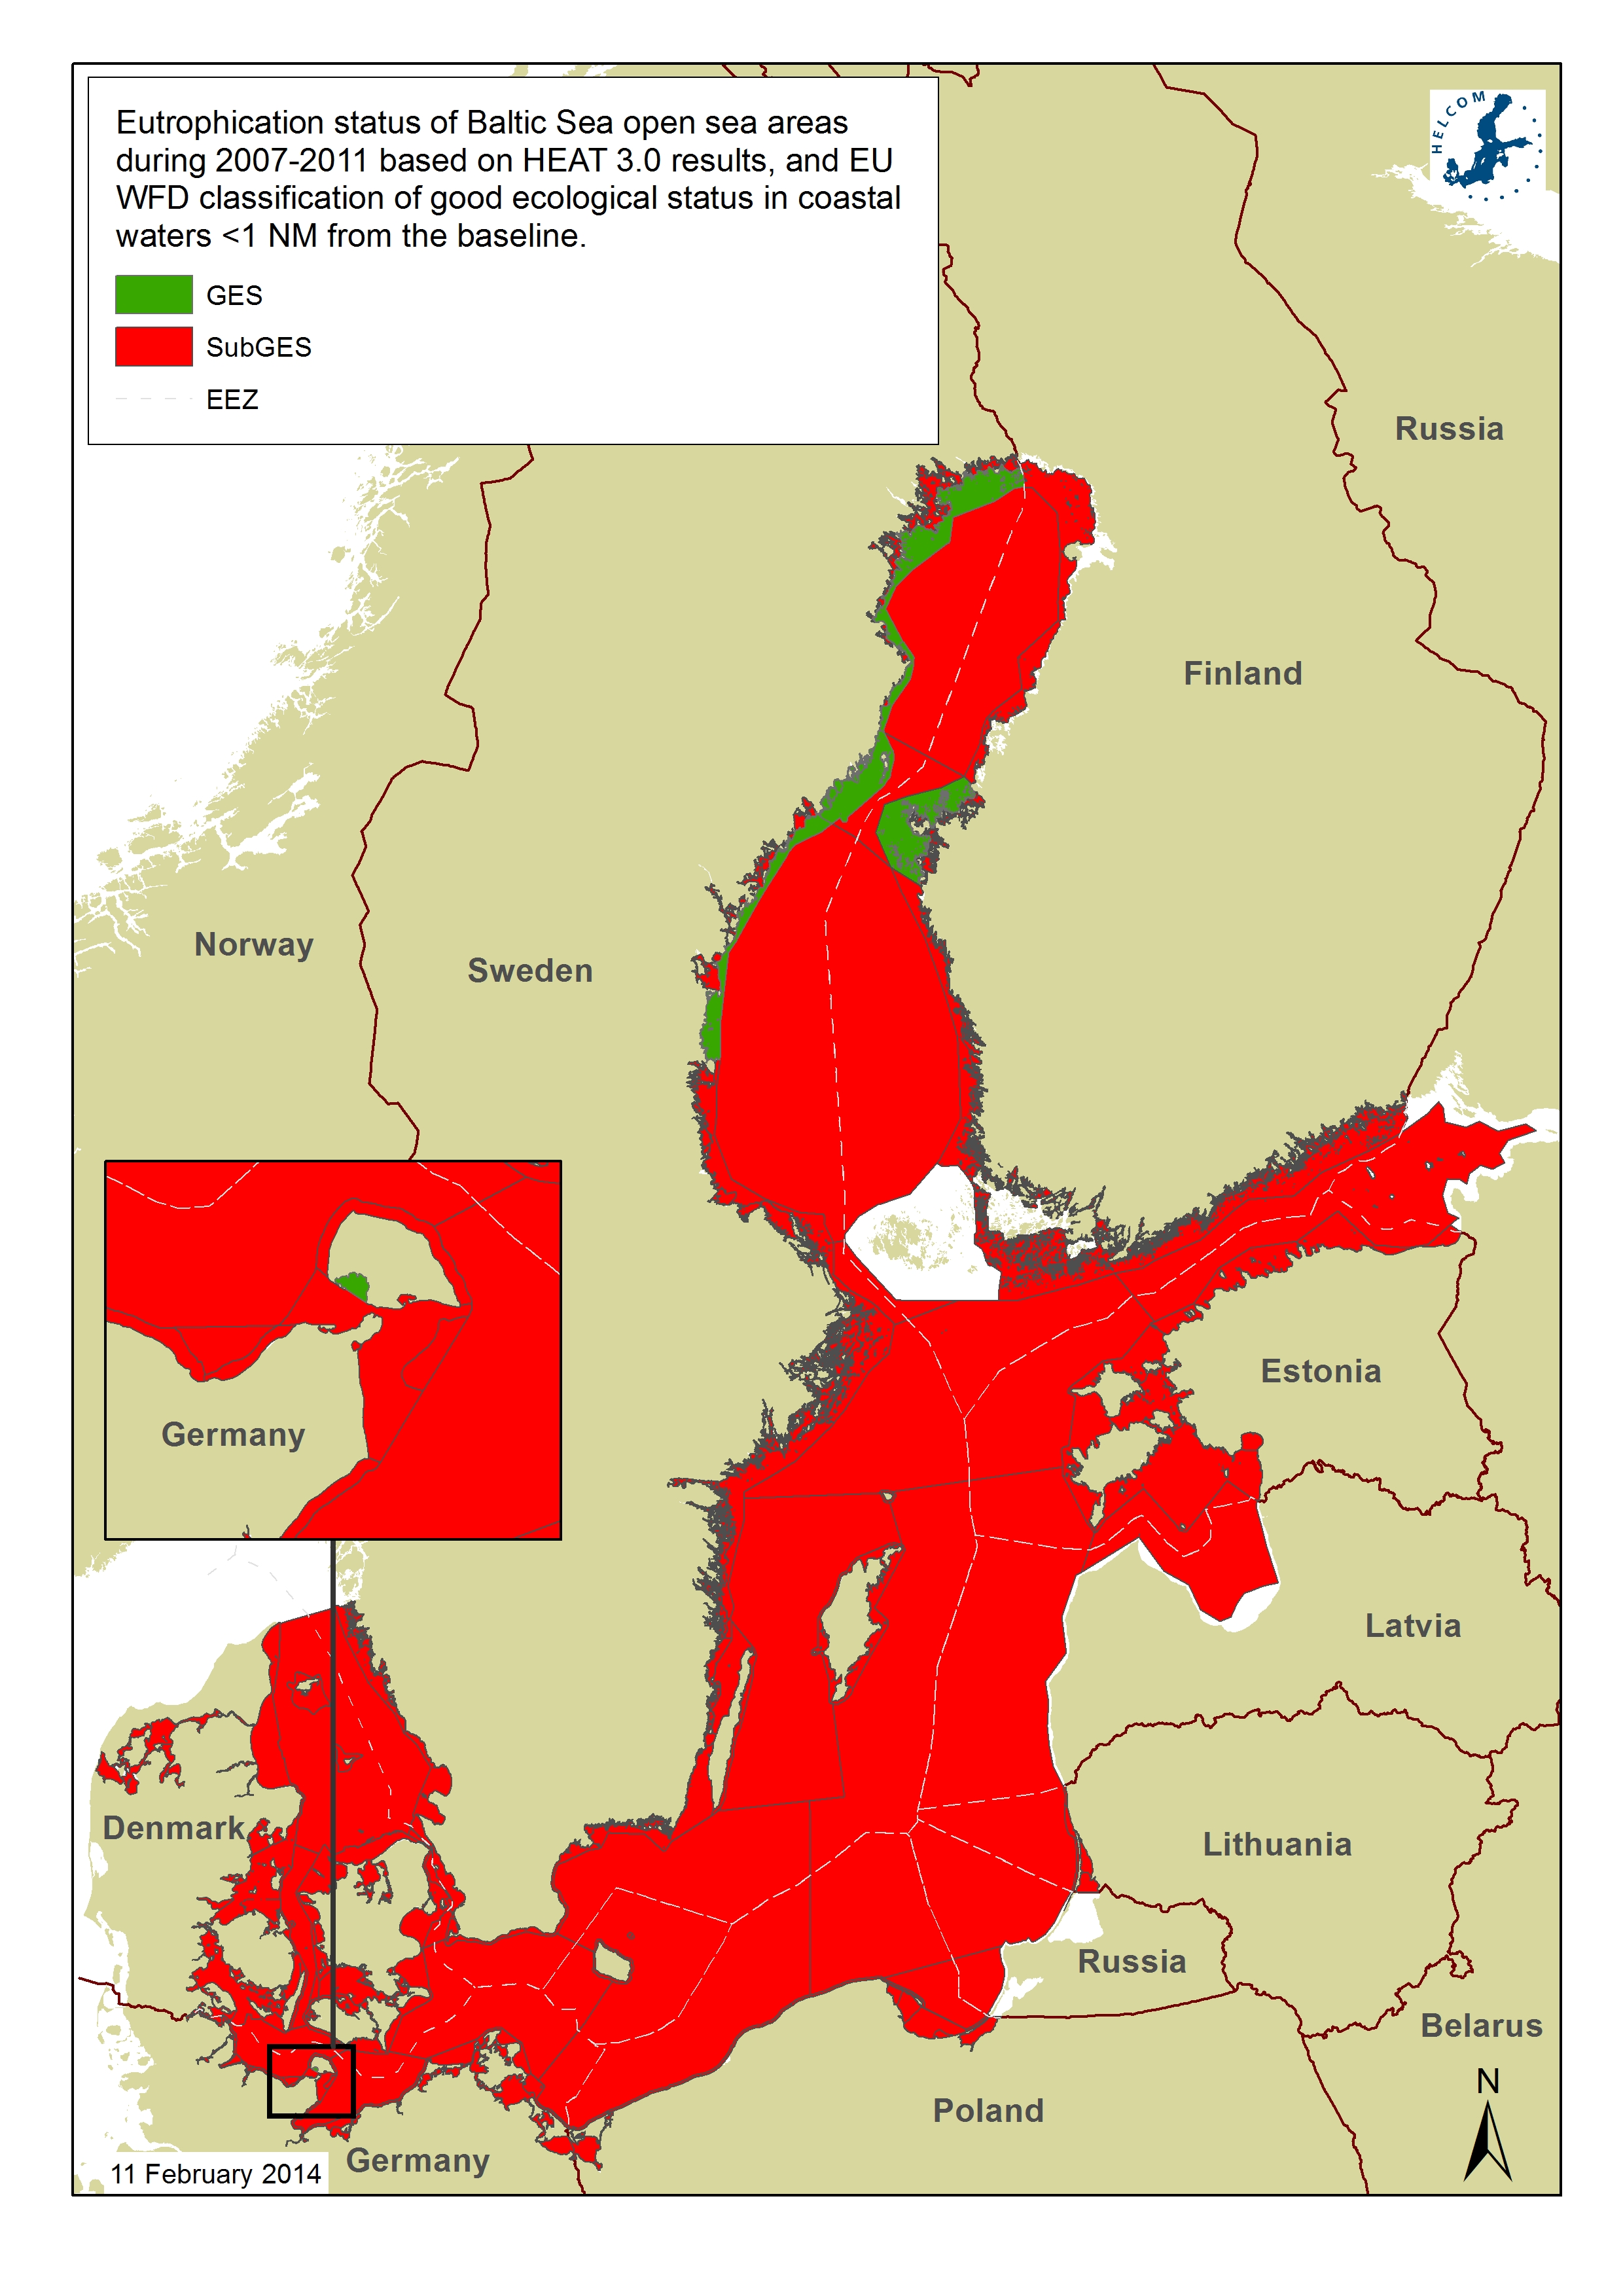 Eutrophication status in 2007-2011 was assessed as being affected by eutrophication in the entire open Baltic Sea (red colour, status less than good; sub-GES).